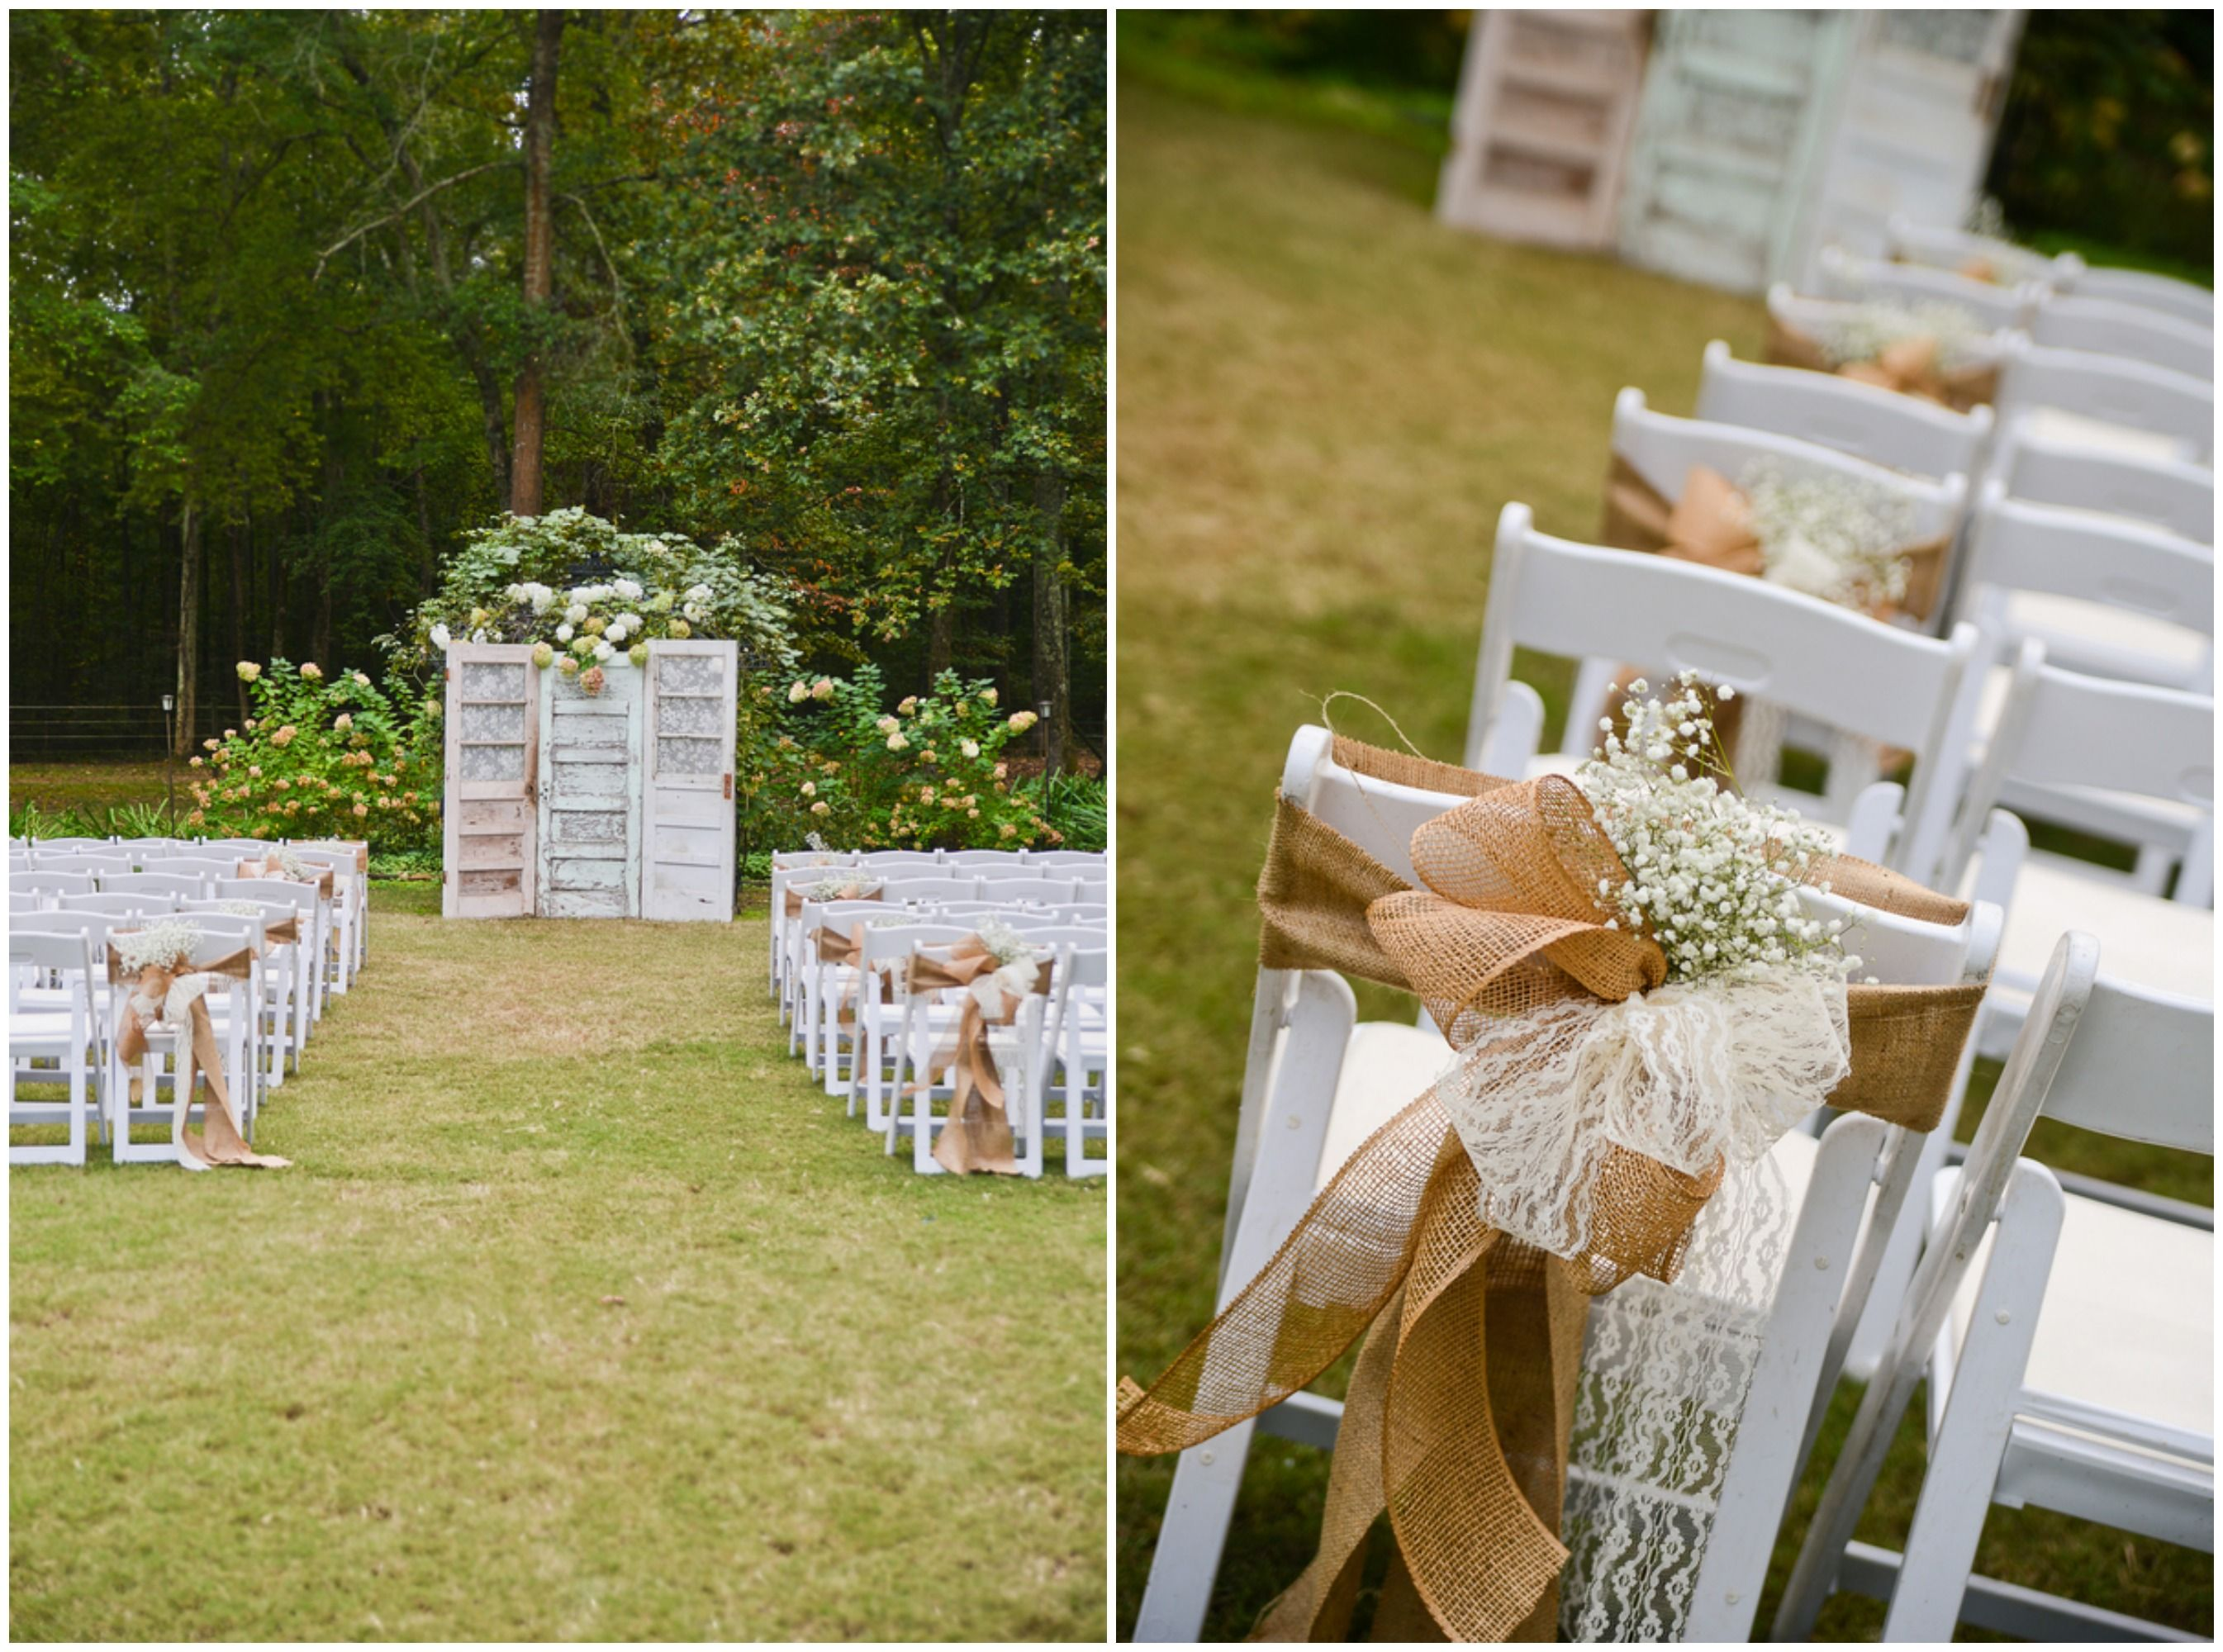 Southern farm wedding in alabama country weddings decoration and outdoor country wedding ceremony decorations junglespirit Choice Image